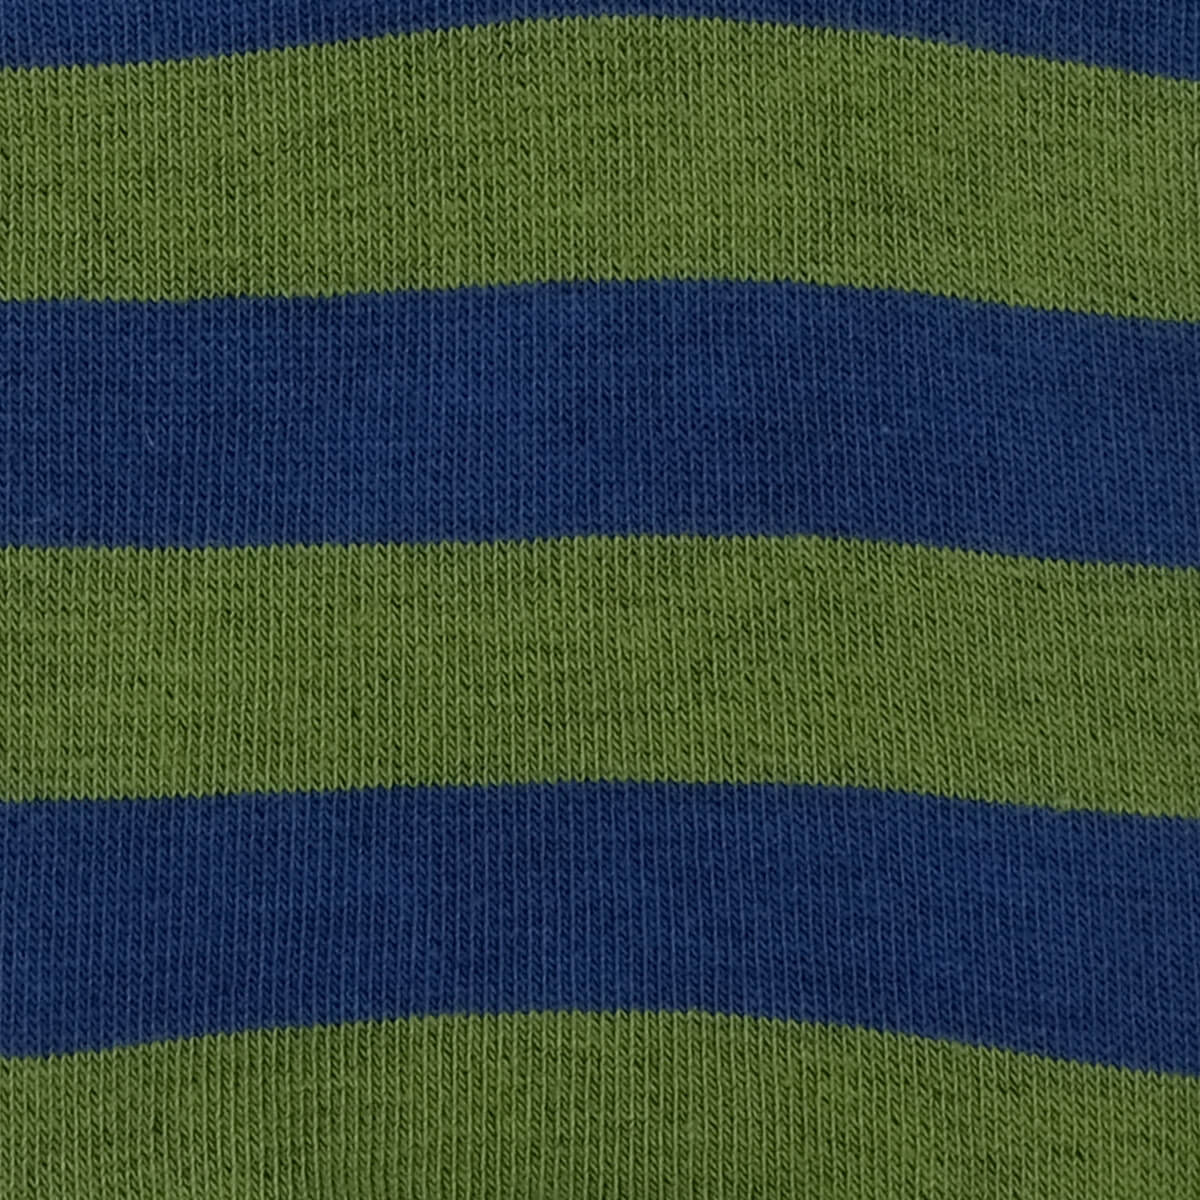 Womens Socks - Rugby Stripes Women's Socks - Green⎪Etiquette Clothiers